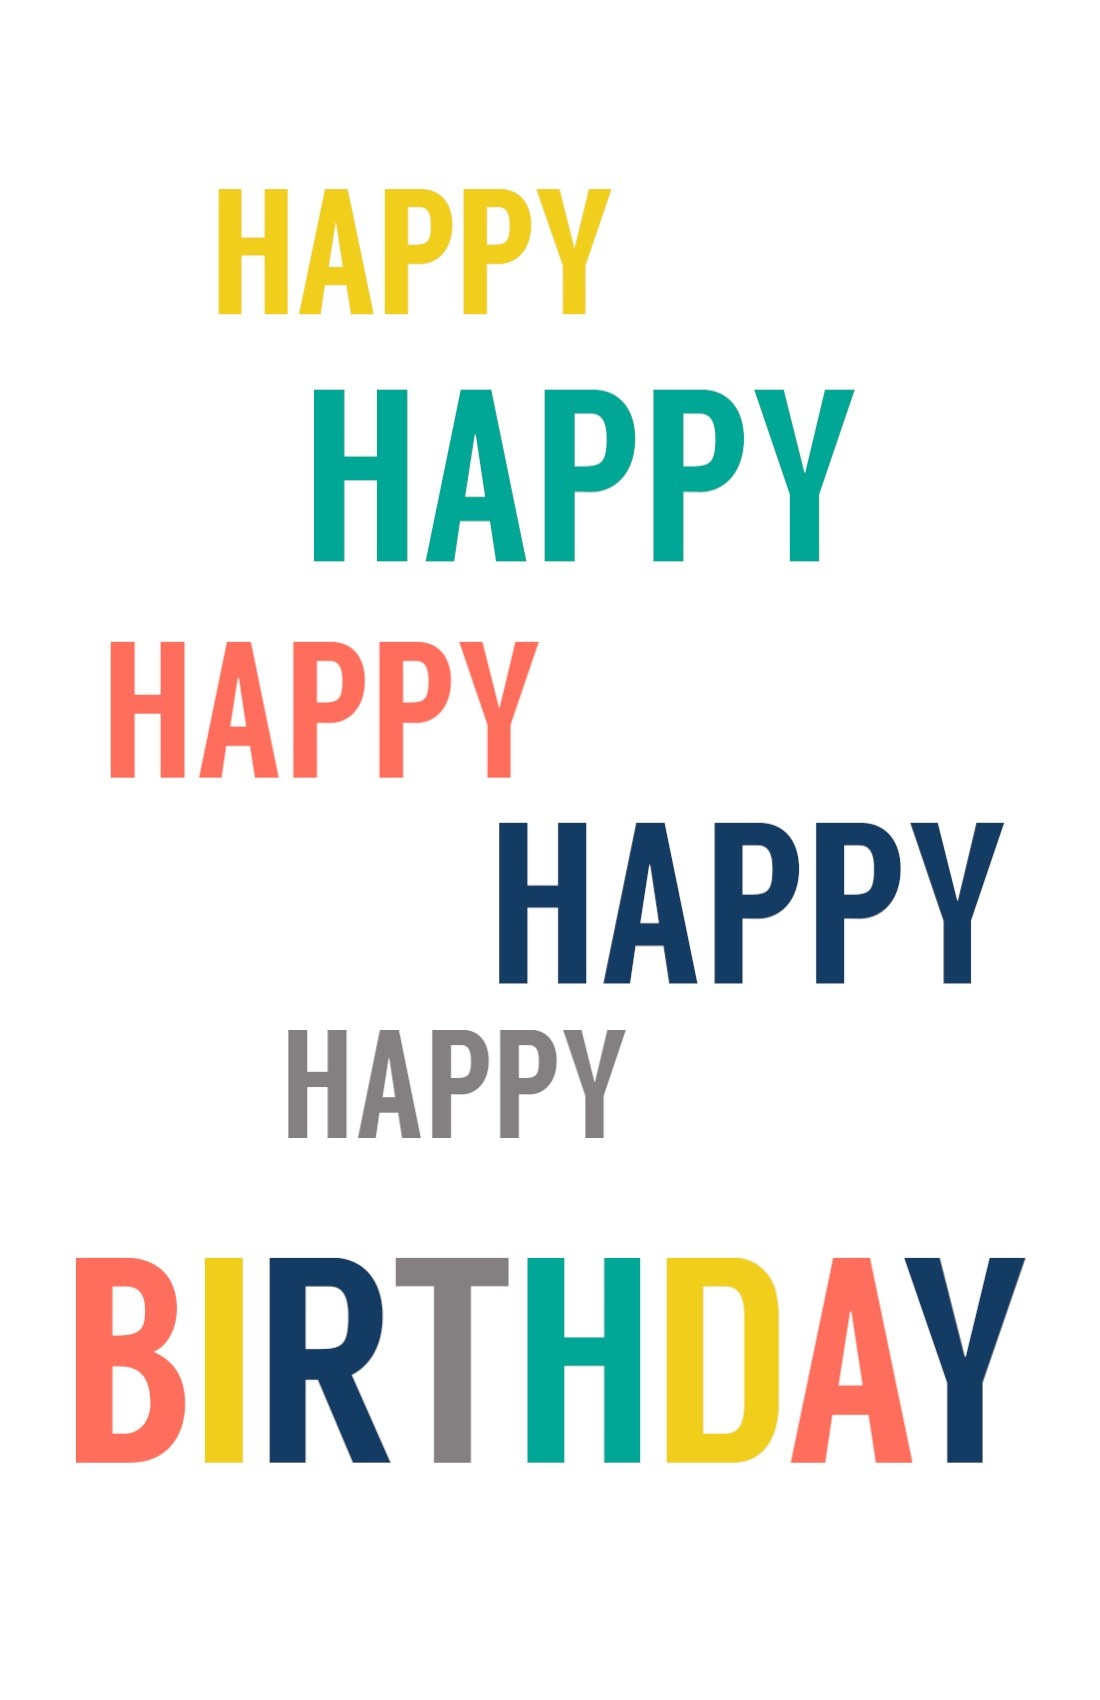 Free Printable Birthday Cards - Paper Trail Design - Free Printable Happy Birthday Cards